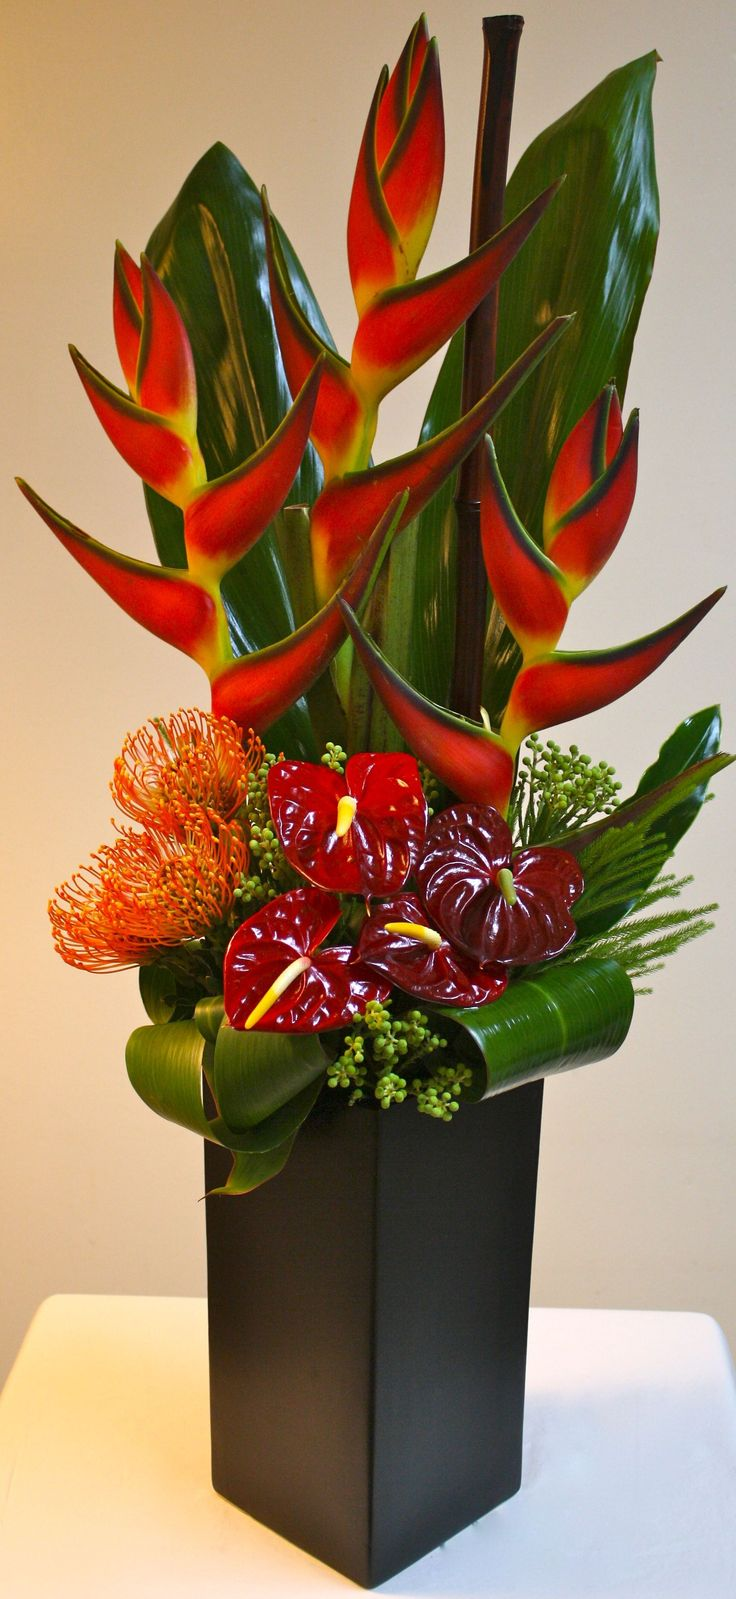 Jordan: A tropical mix of Orange Birds of Paradise, Orange Pin Cushions, Red Anthurium complimented with Green Tropical Leaves in a tall black ceramic vase. #Arreglosflorales